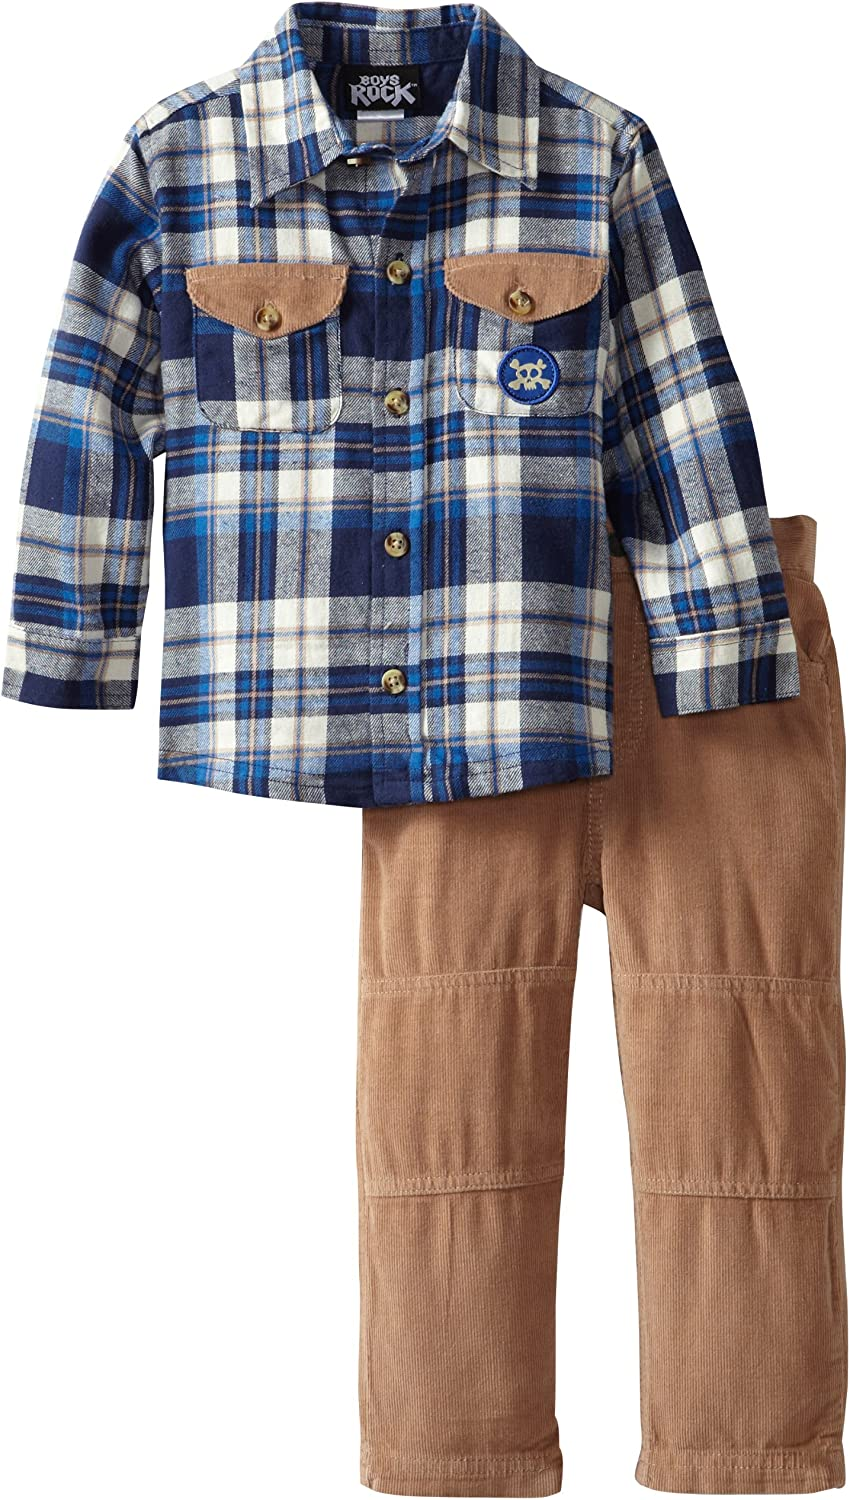 Boys Rock Little Boys Two-Piece Set with Woven Top and Corduroy Pant